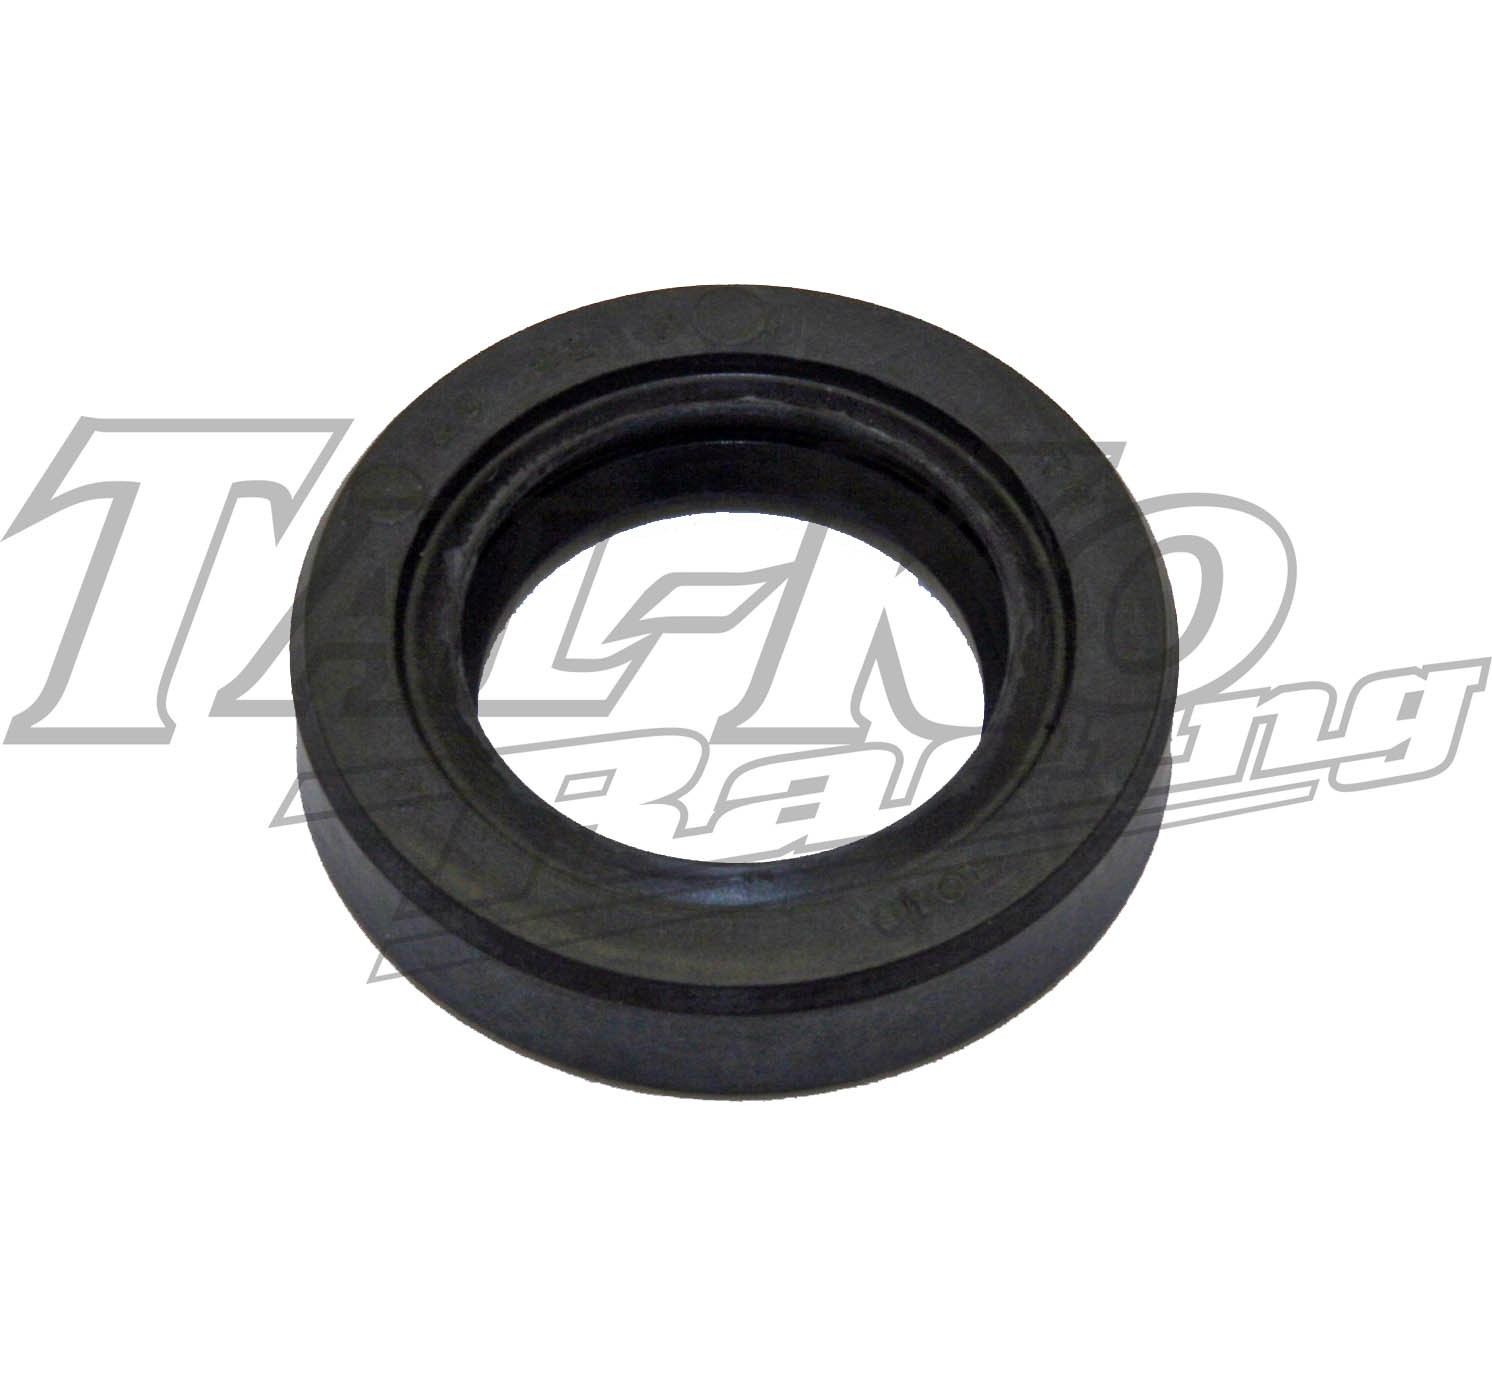 TKM BT82 OIL SEAL ROLF HORSTMAN CLUTCH